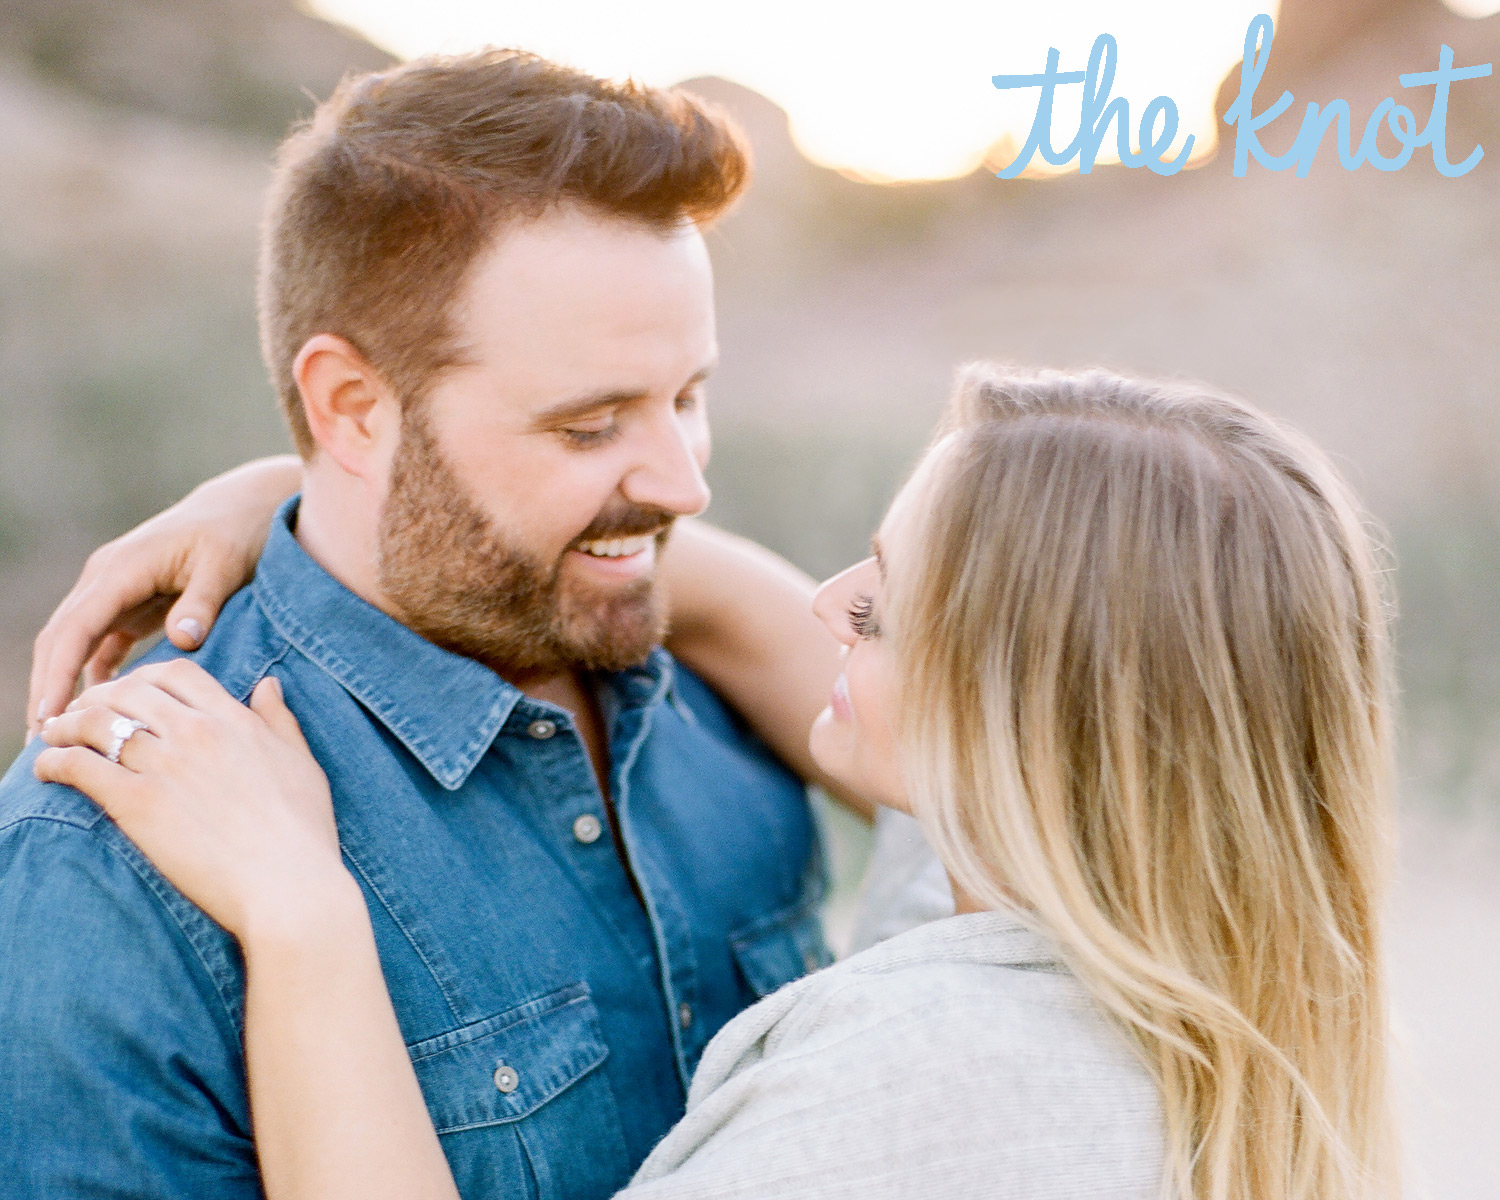 Randy Houser and Tatiana Starzynski engagement photos